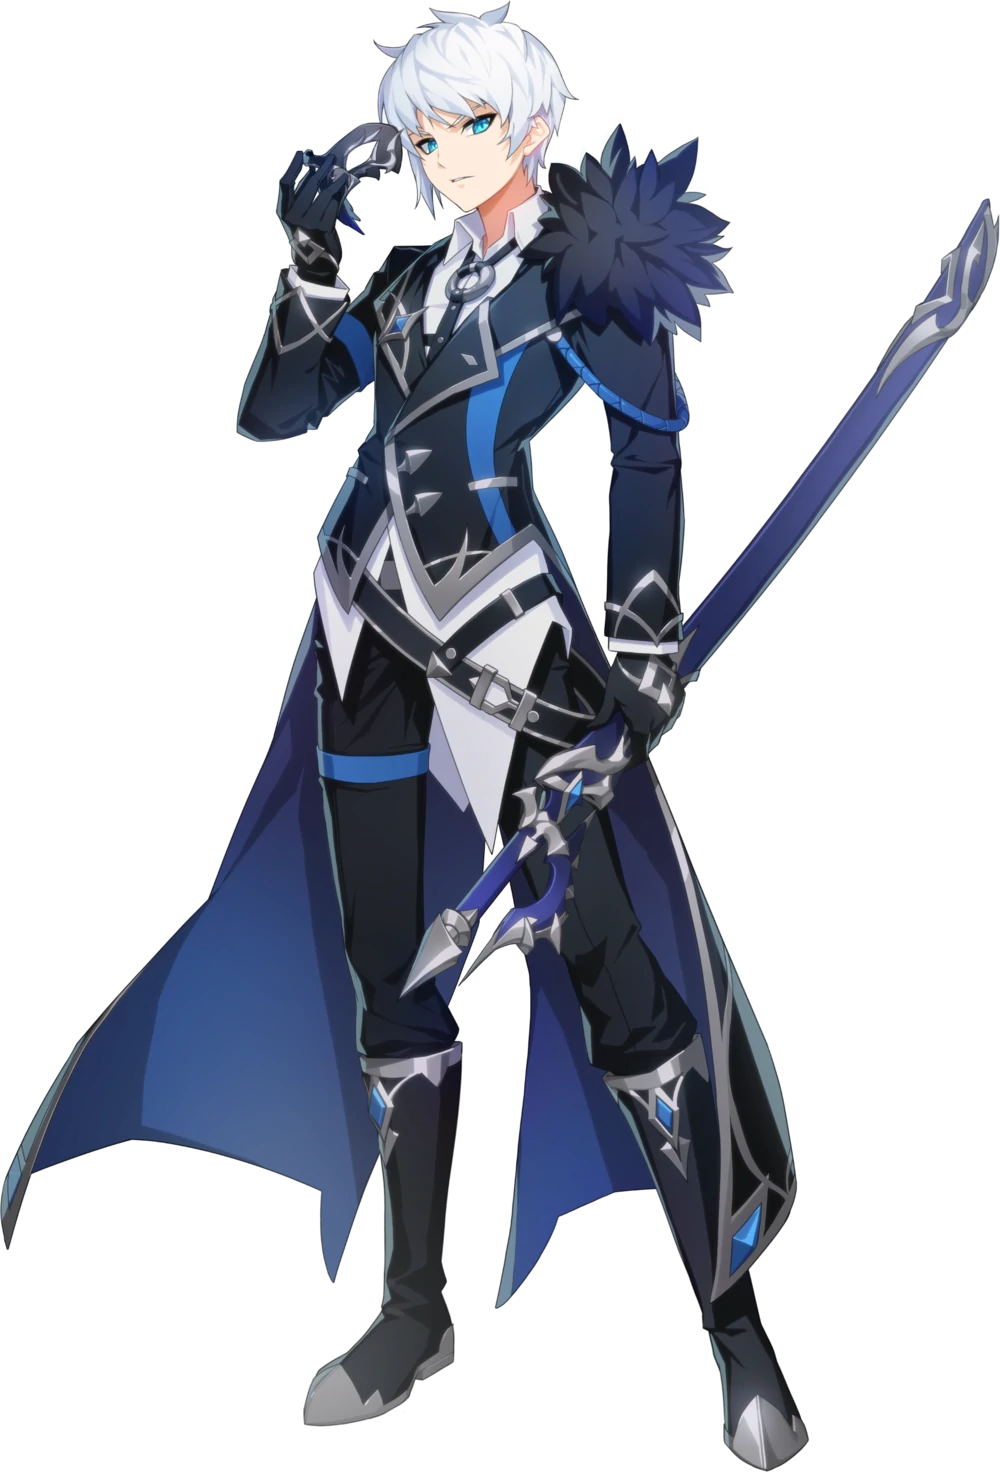 Lass Grand Chase Dimensional Chaser Grand Chase Wiki Fandom Powered By Wikia Anime Character Design Anime Outfits Anime Knight